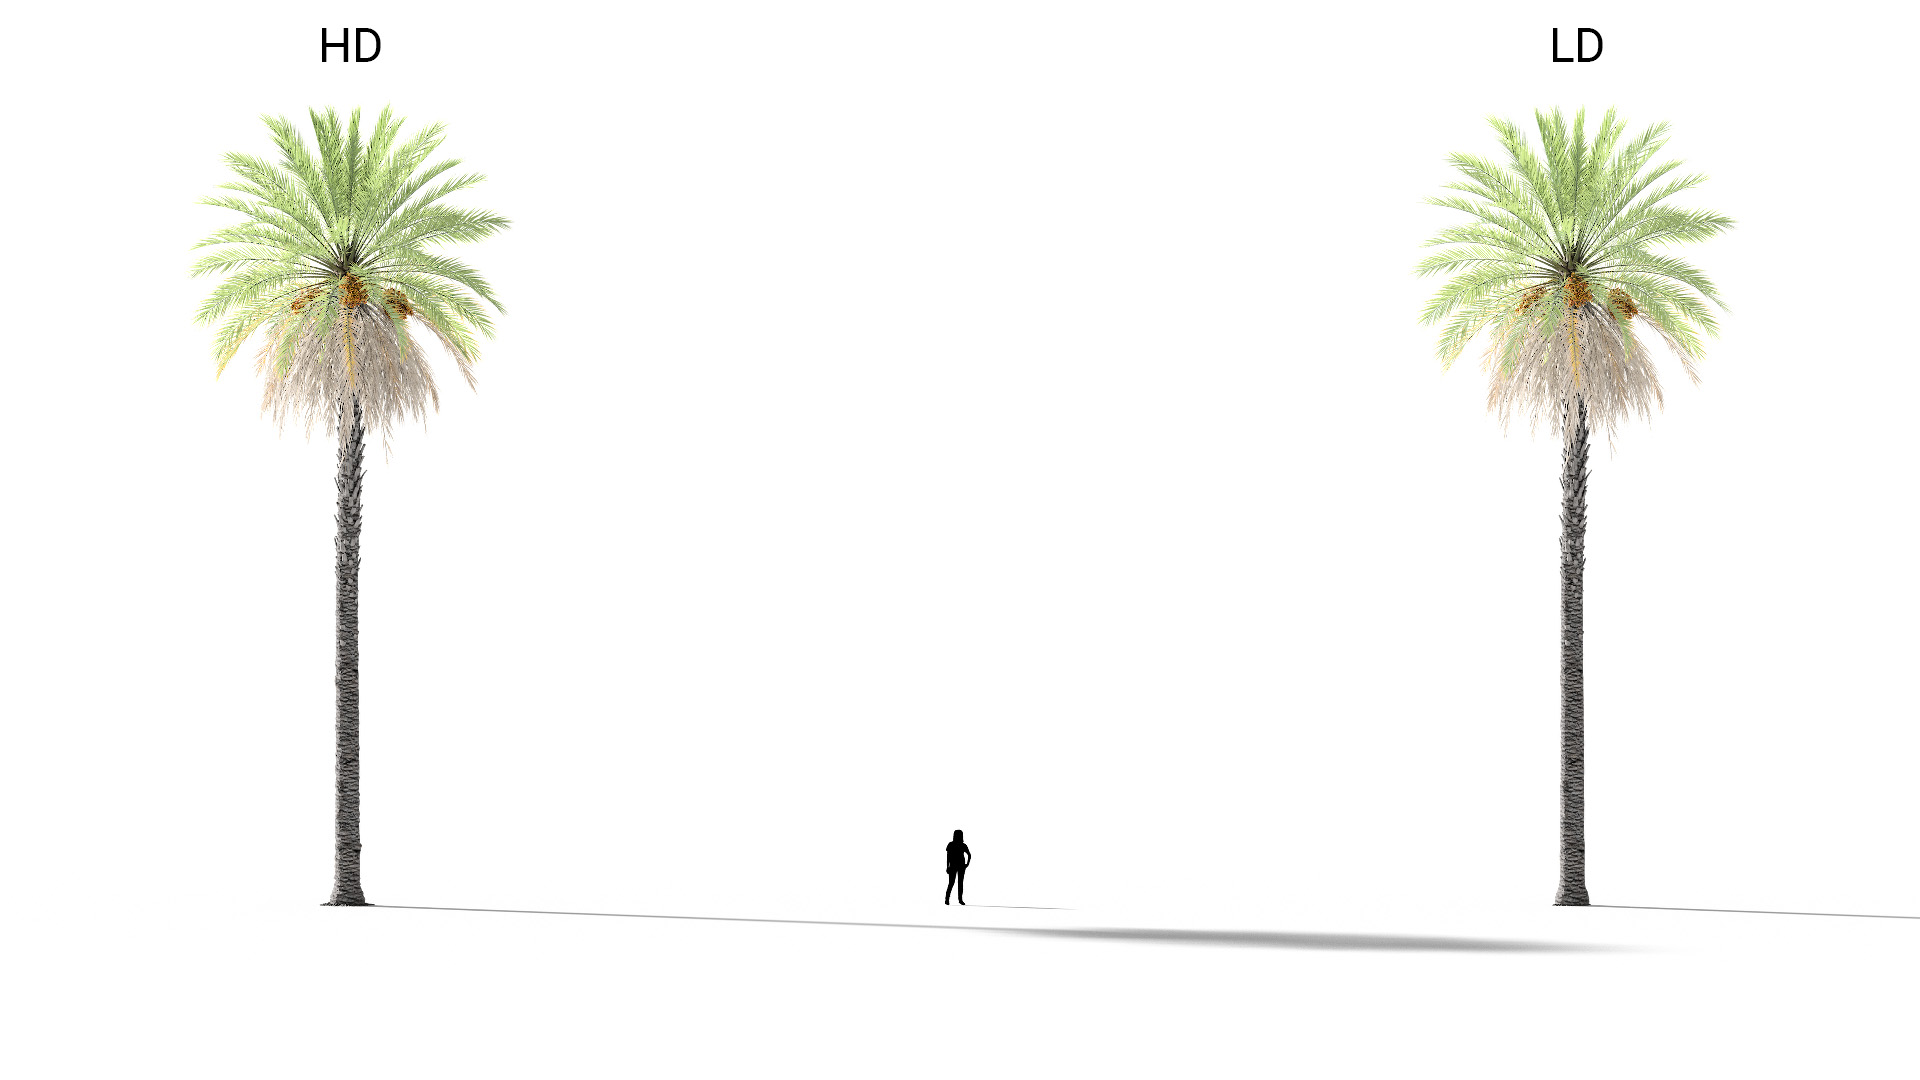 3D model of the Date palm Phoenix dactylifera included versions